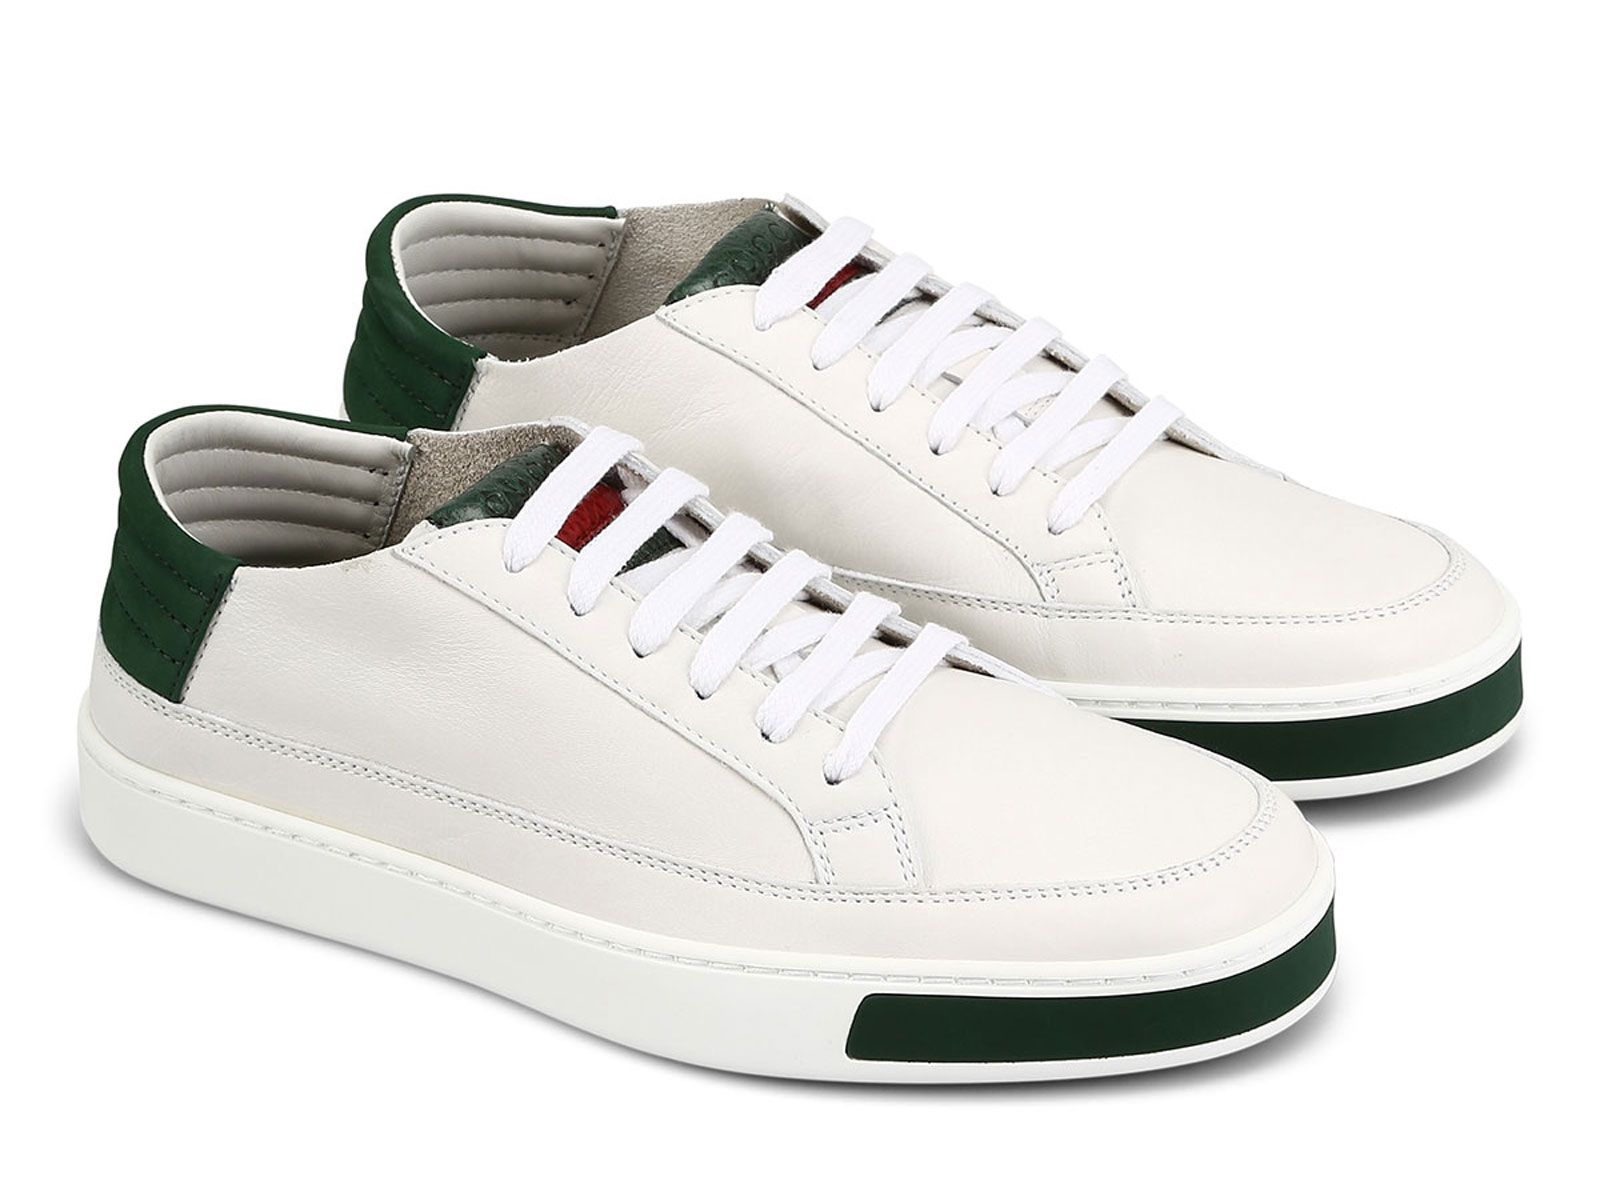 nuovi stili 402bb 51508 Gucci low top white leather and ayers snake sneakers - Italian ...